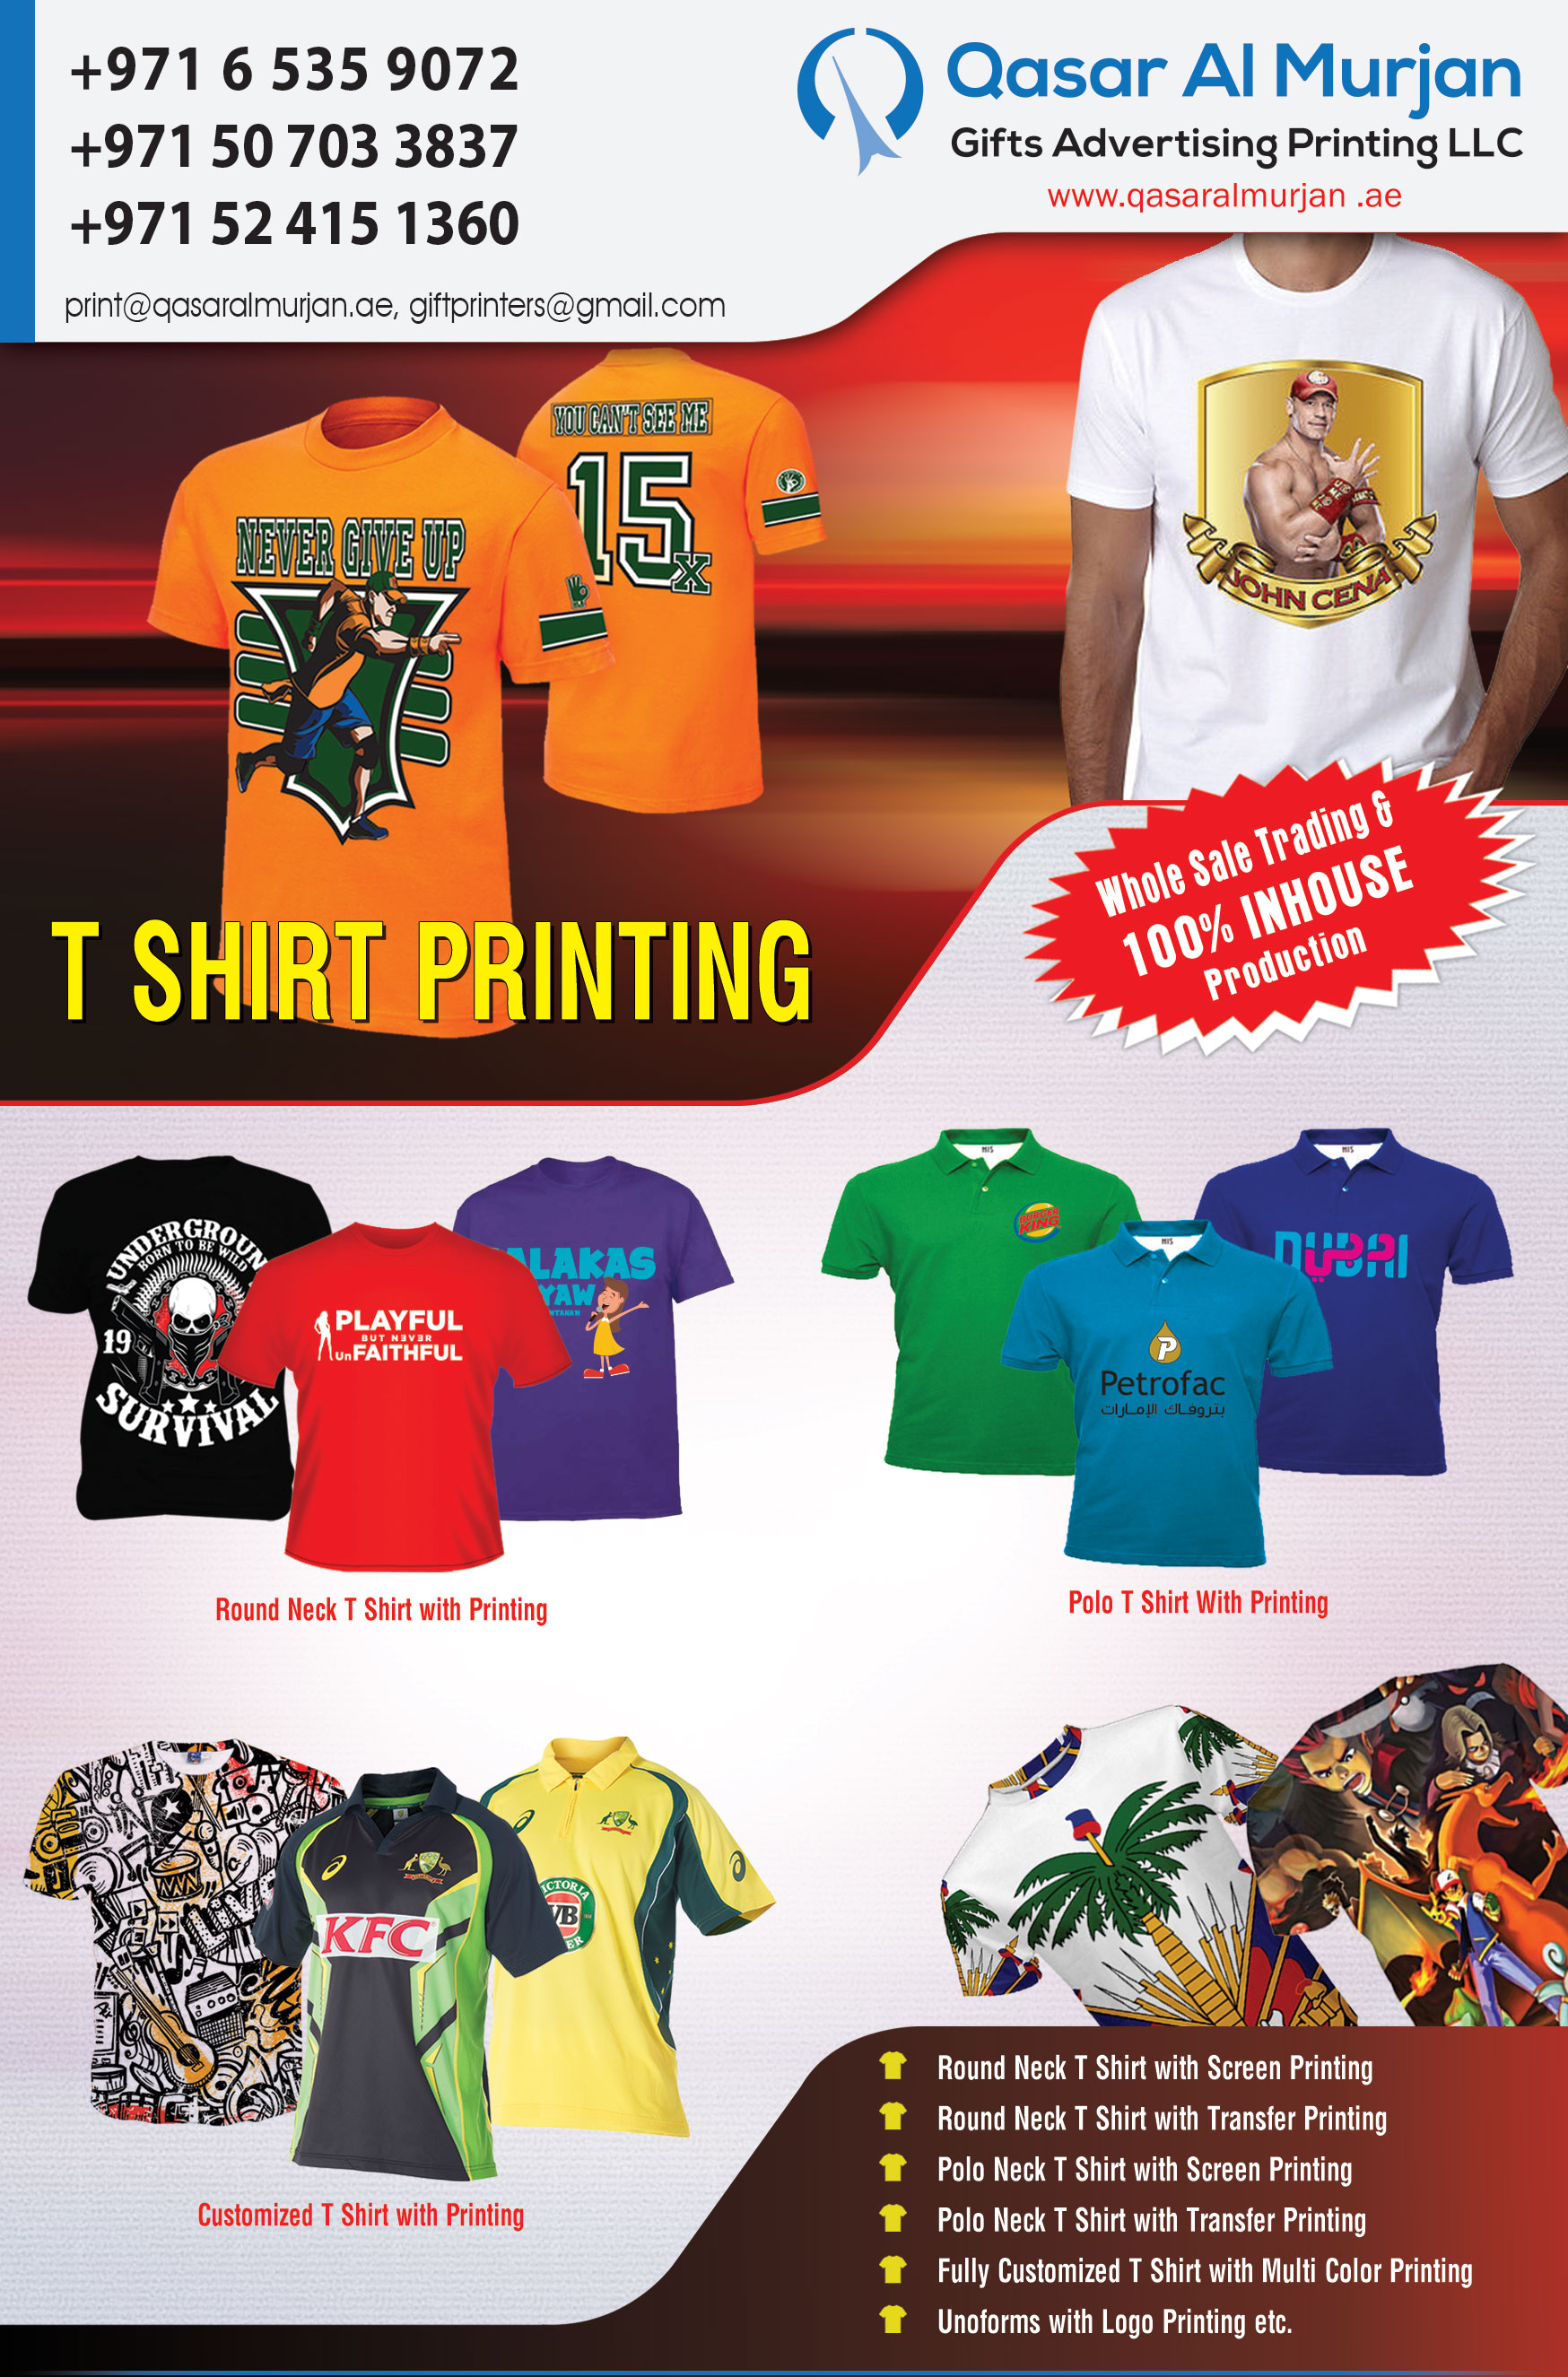 6ce0139d 24 Hours Printing services in Dubai, Sharjah. 100% in house ...